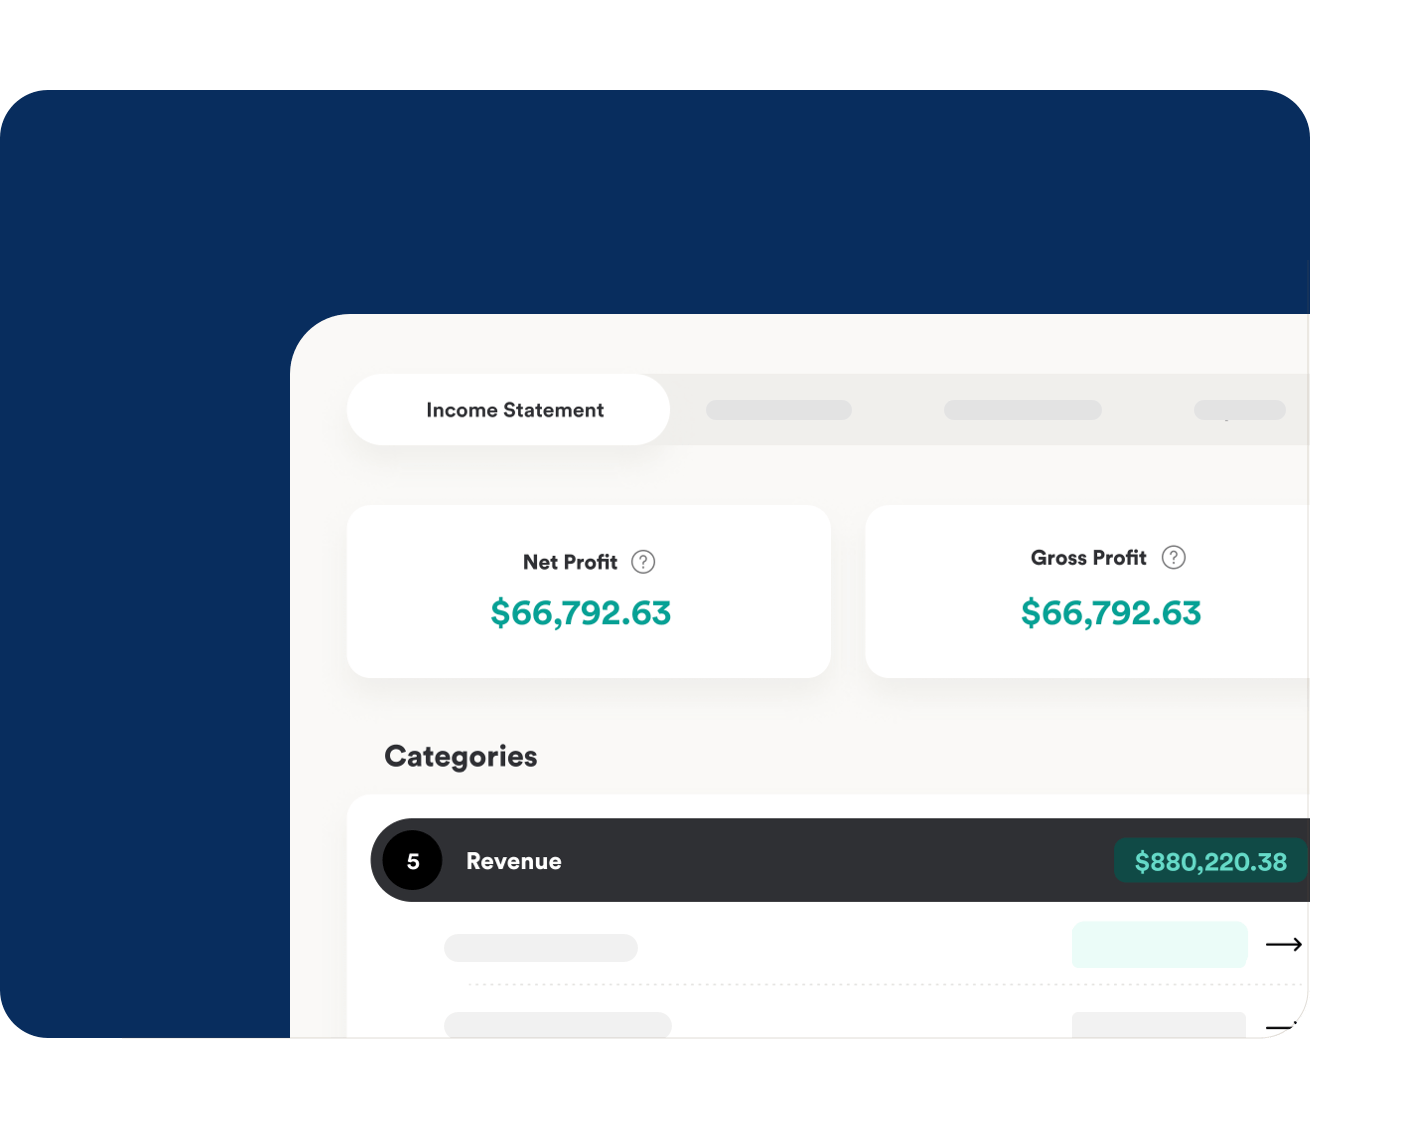 Bench Software - Simple to use anytime and anywhere. Forget about spending hours learning new software. The Bench platform makes it super simple to view your financials, update information, or check in with your team.